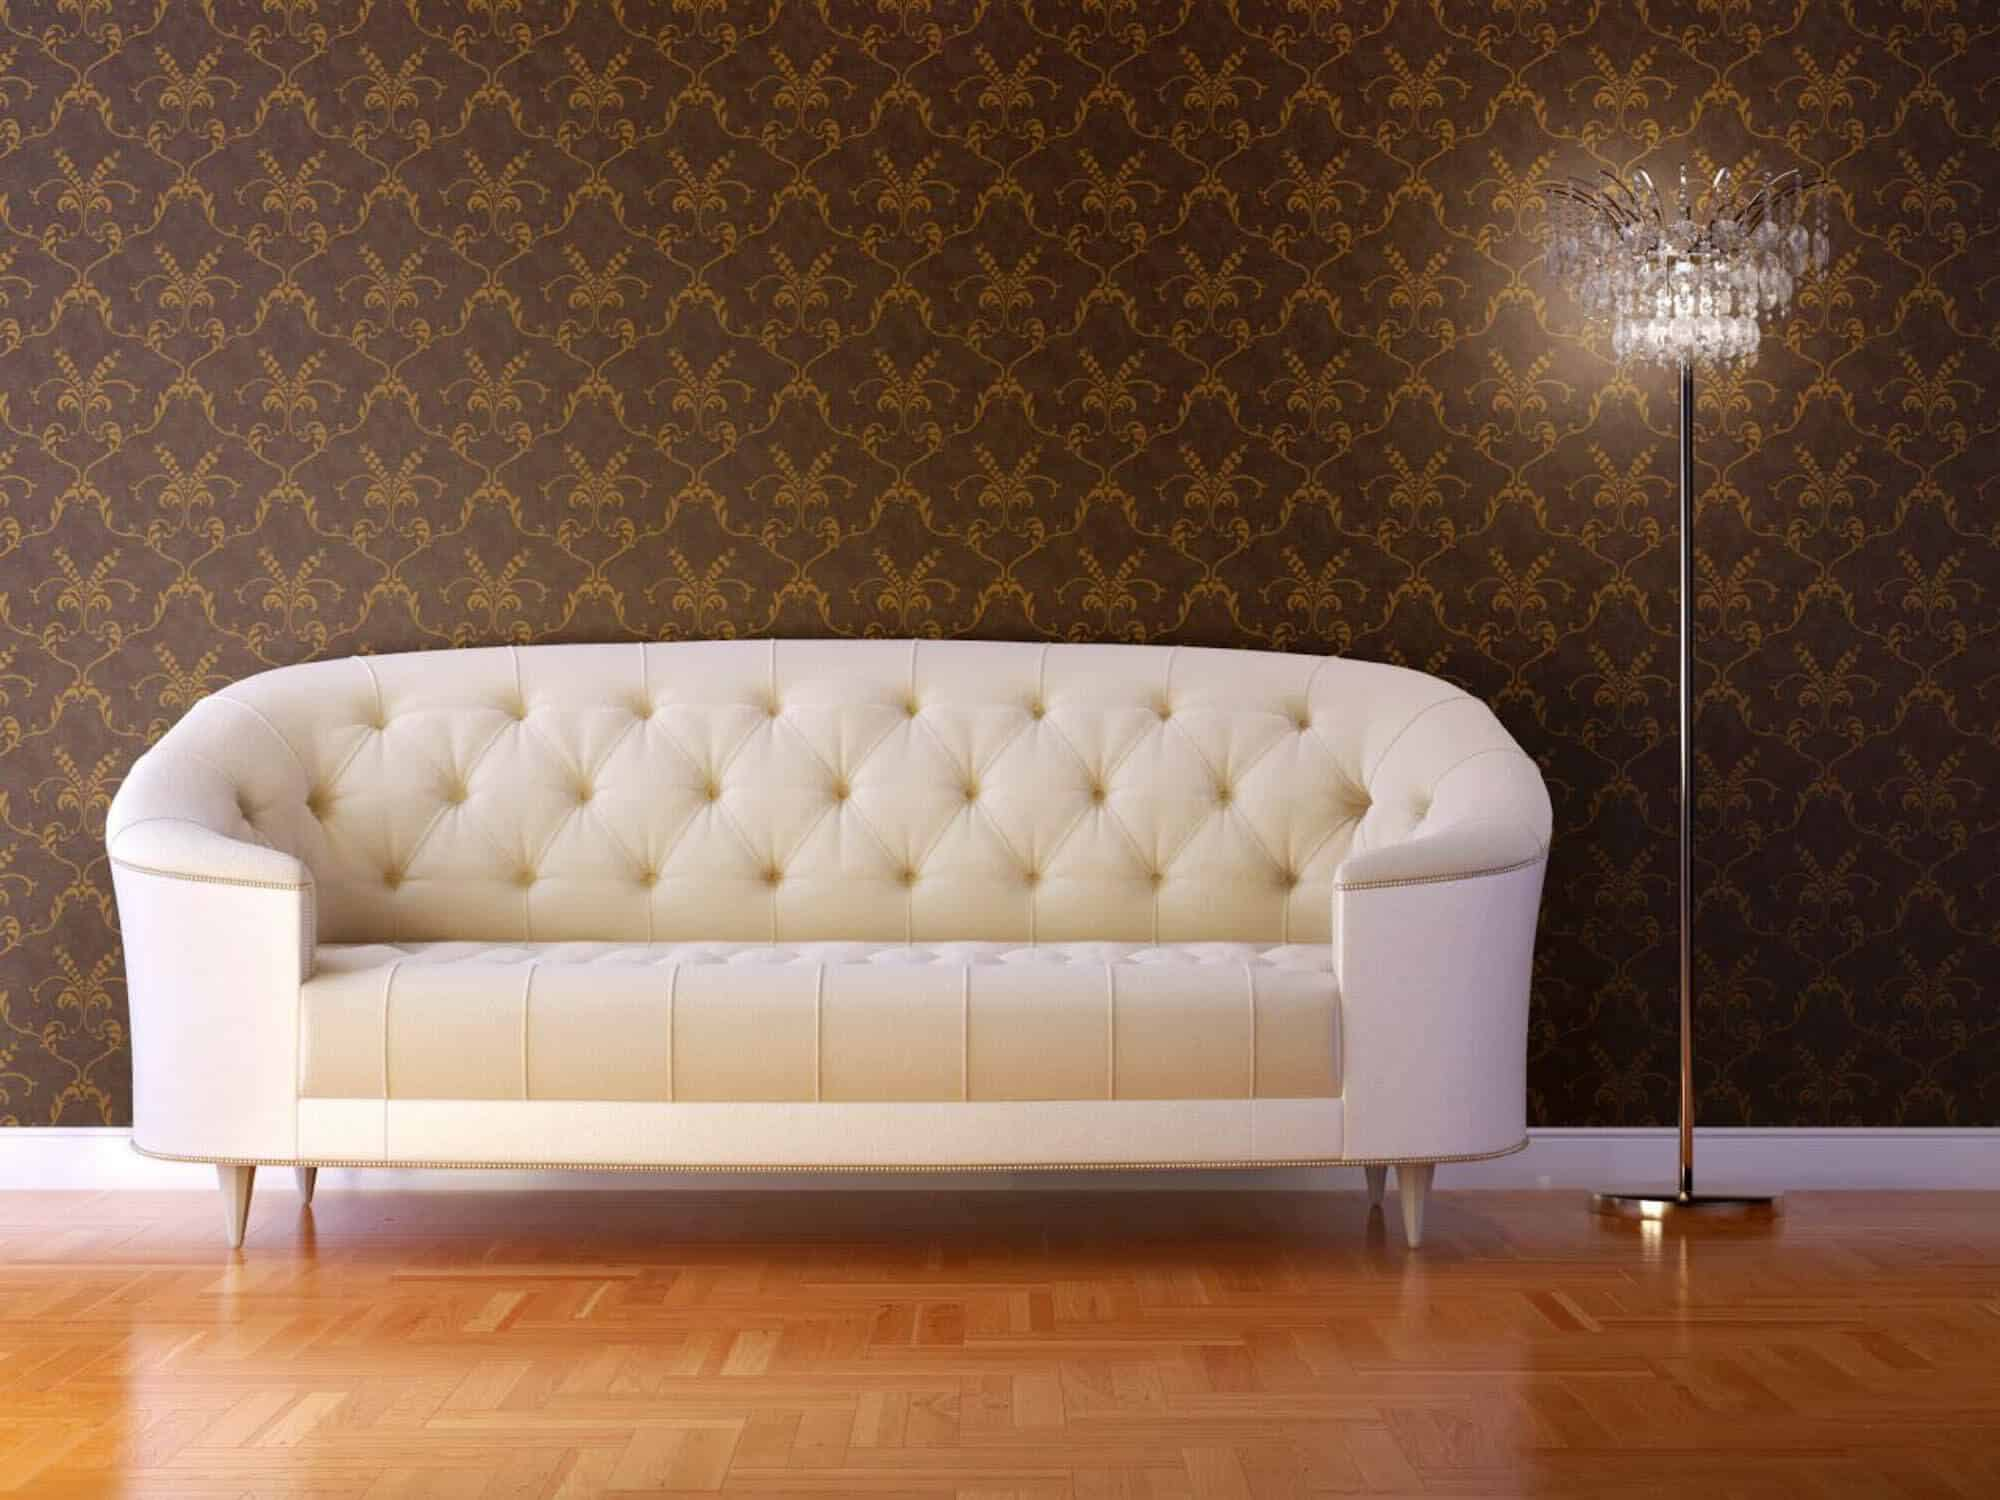 A Sofa Can Be Used